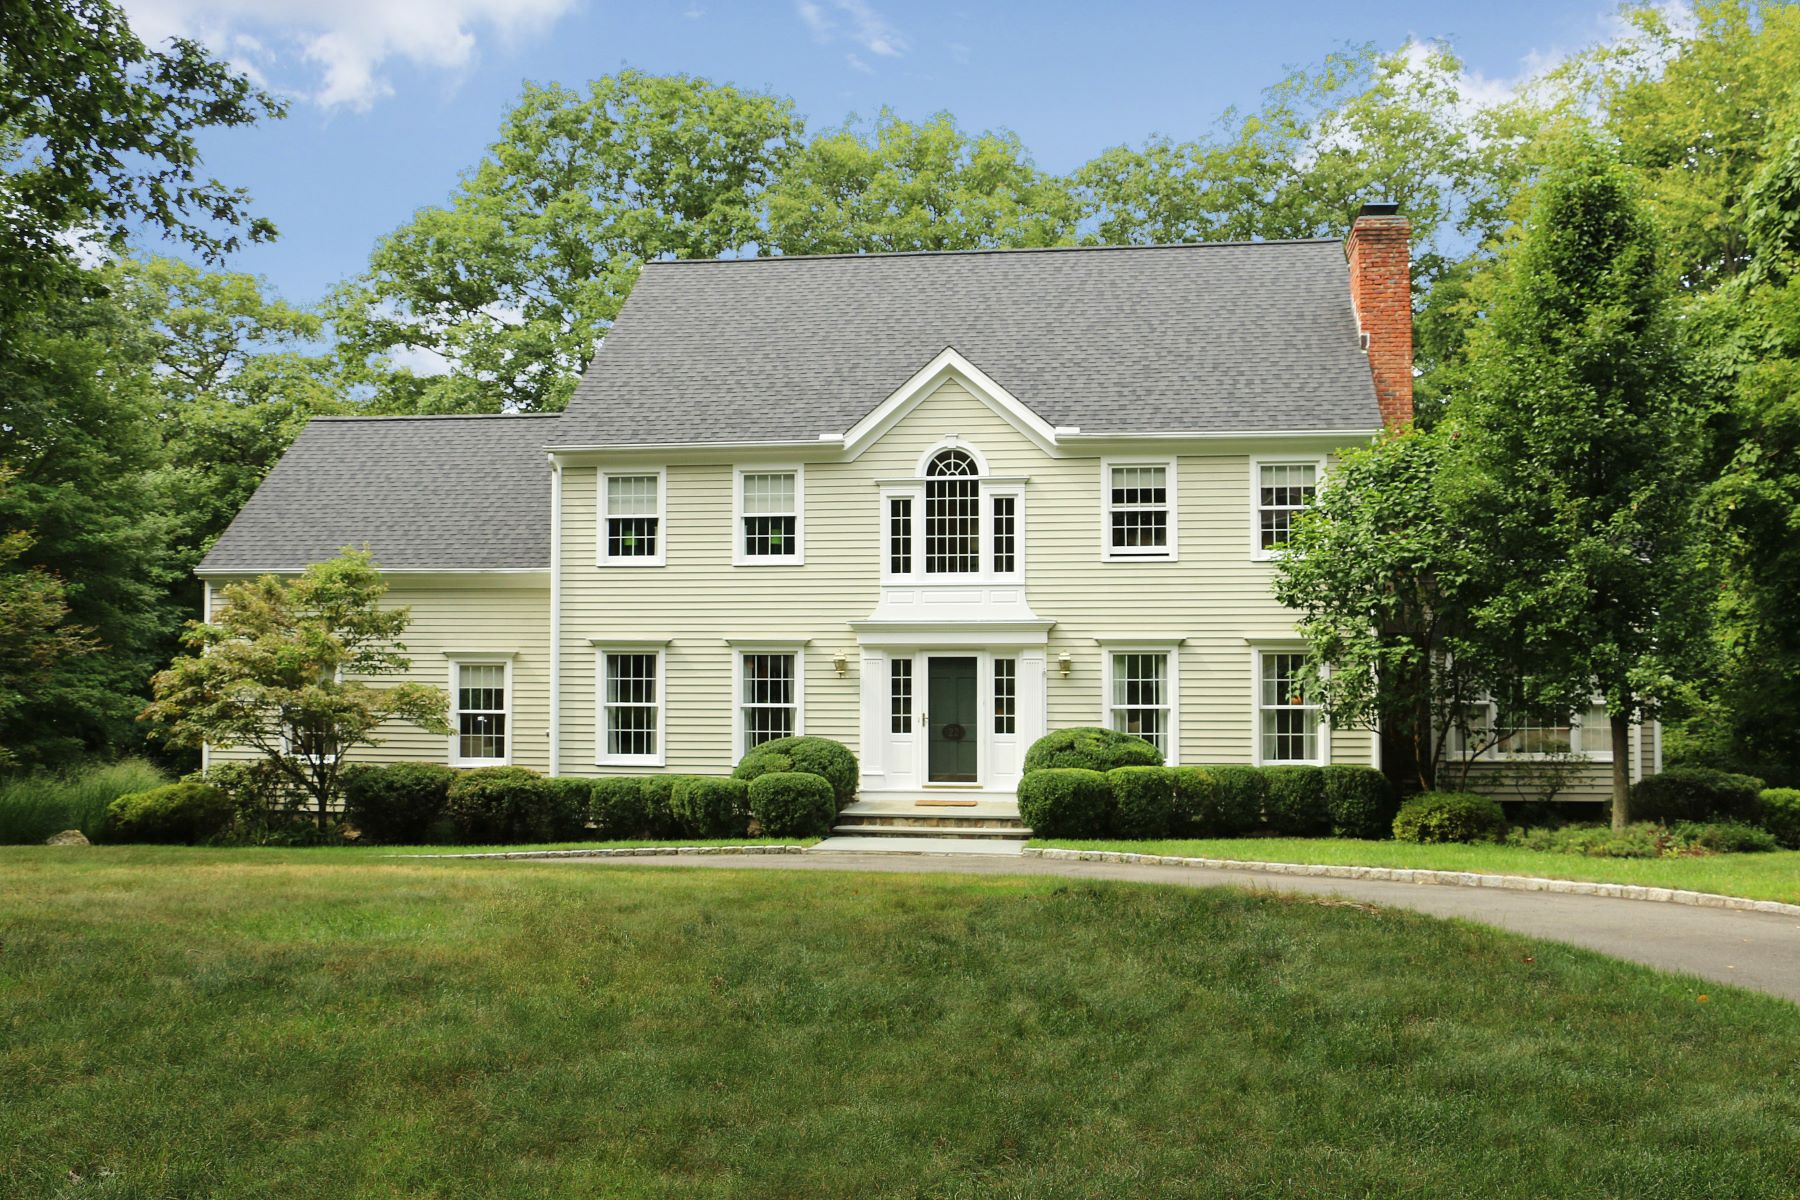 Casa Unifamiliar por un Venta en Elegant & Updated Colonial 22 Armand Road Ridgefield, Connecticut, 06877 Estados Unidos